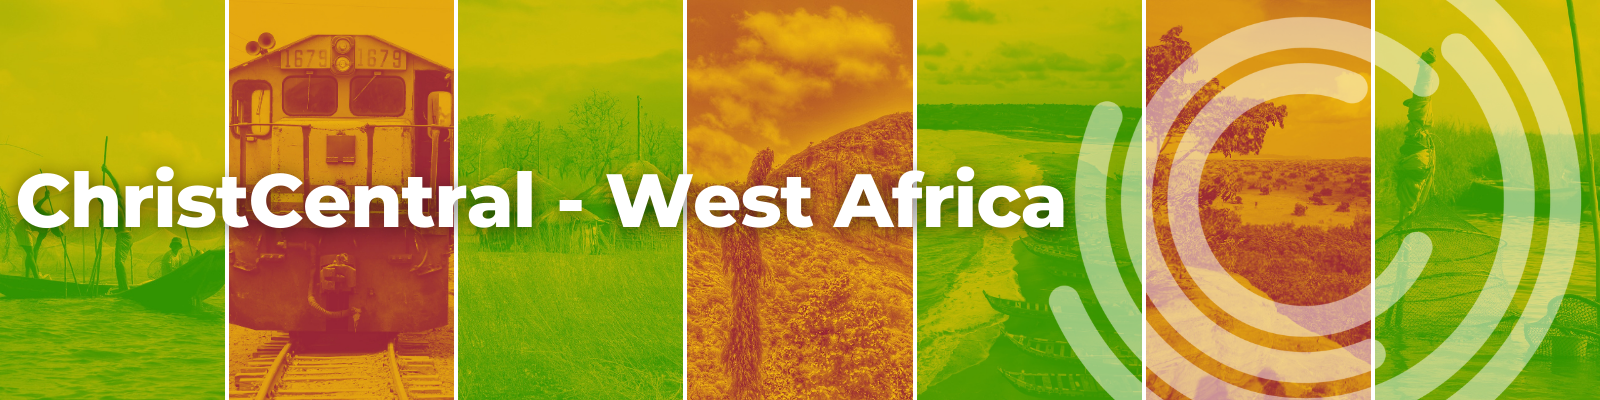 ChristCentral - West Africa